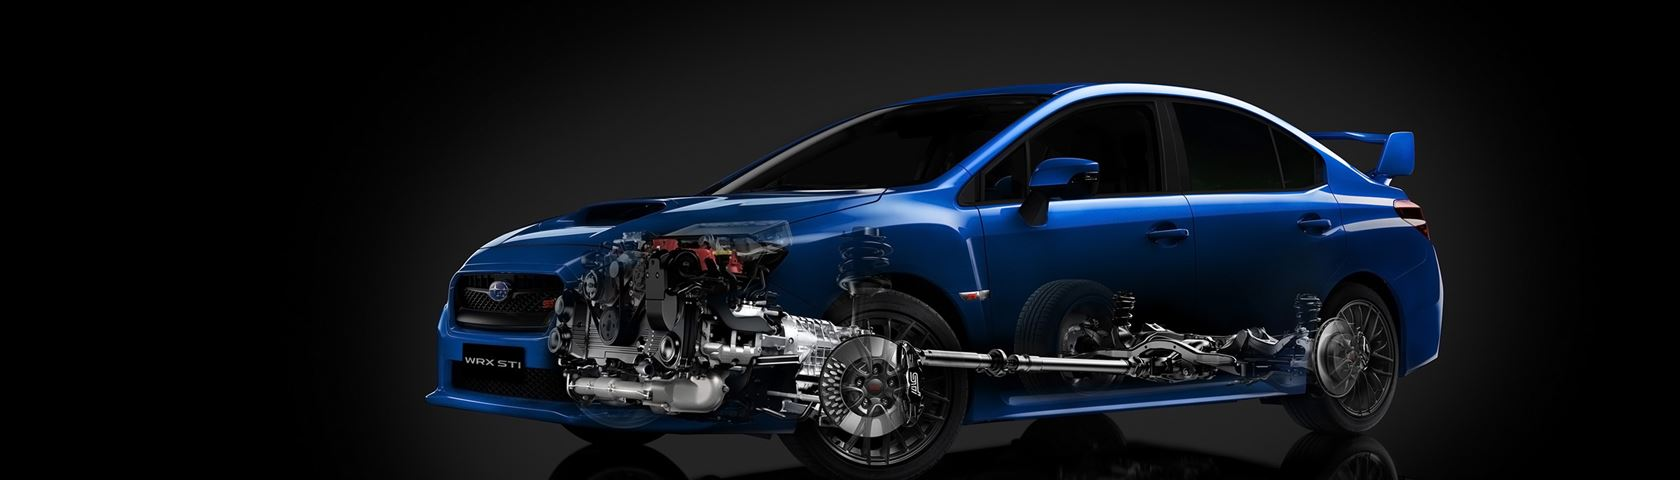 Subaru Wrx Sti Internals Images Wallpaperfusion By Binary